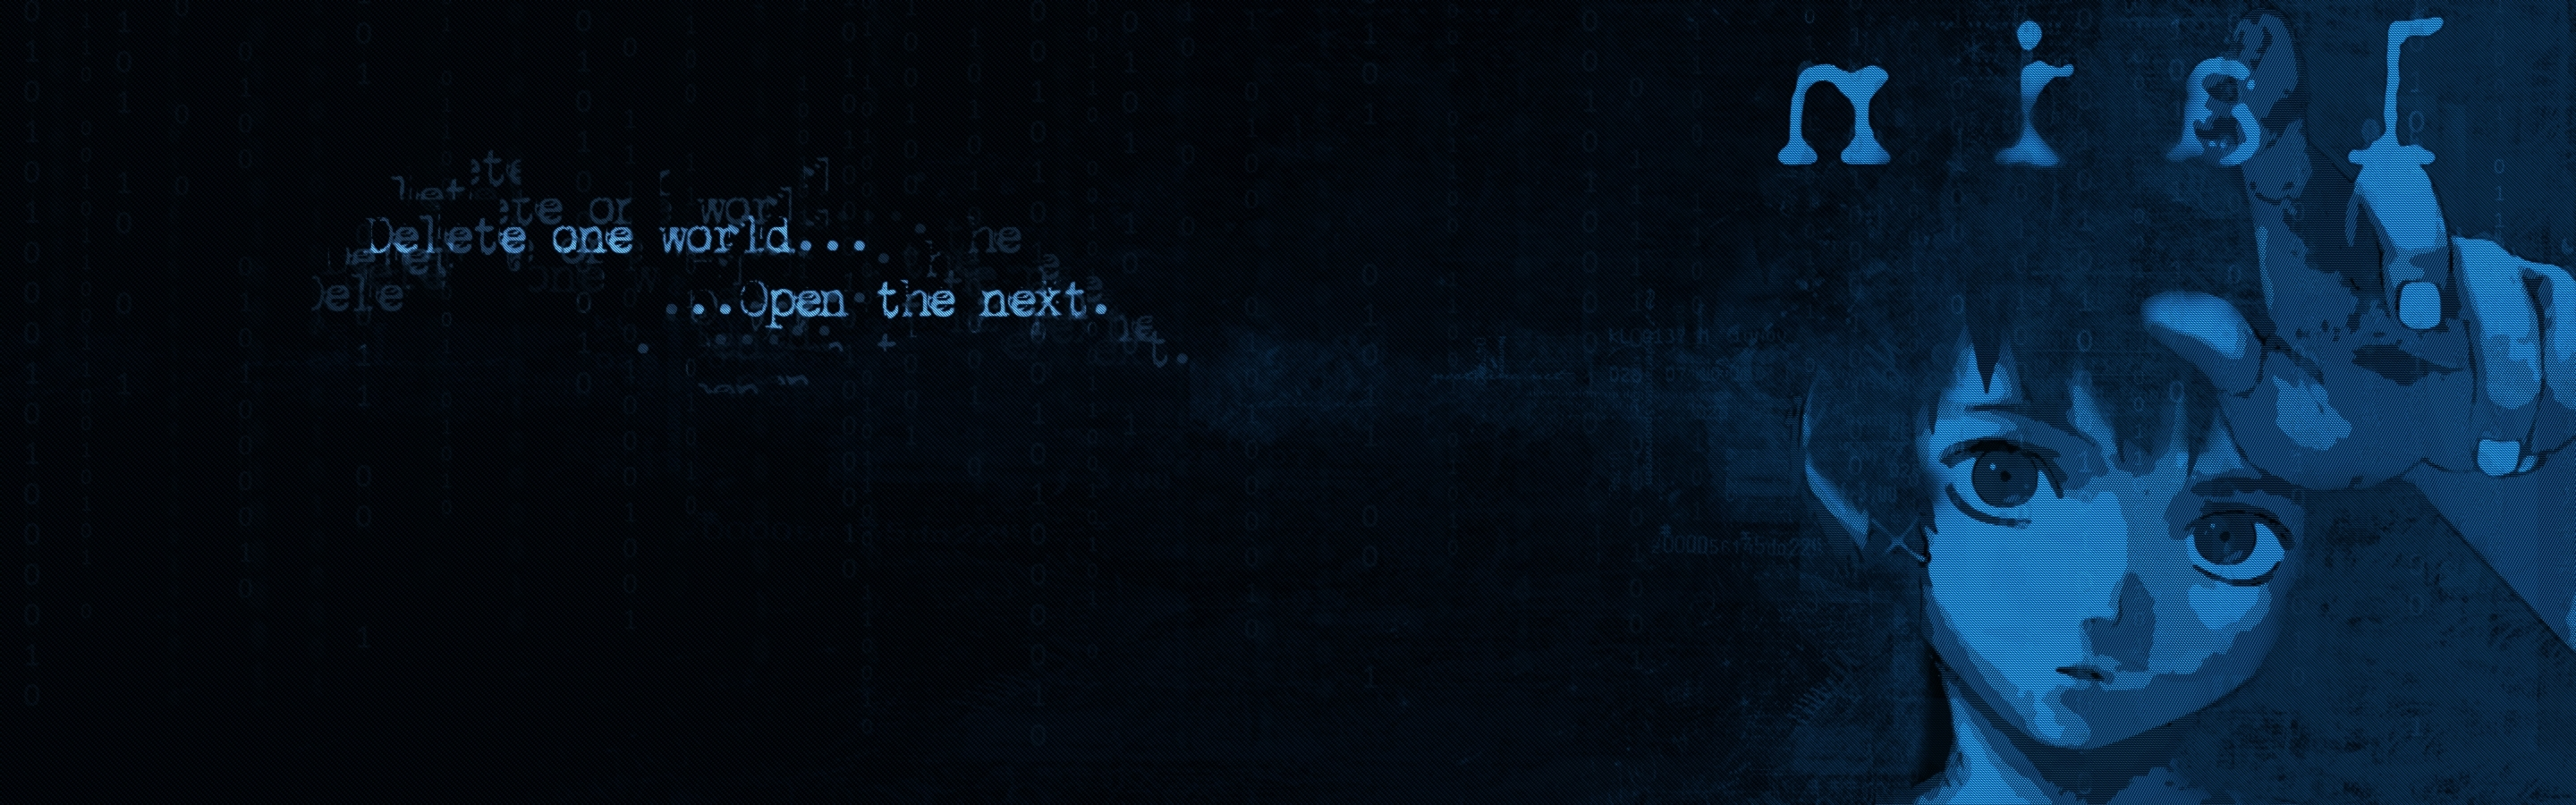 blue text serial experiments HD Wallpaper